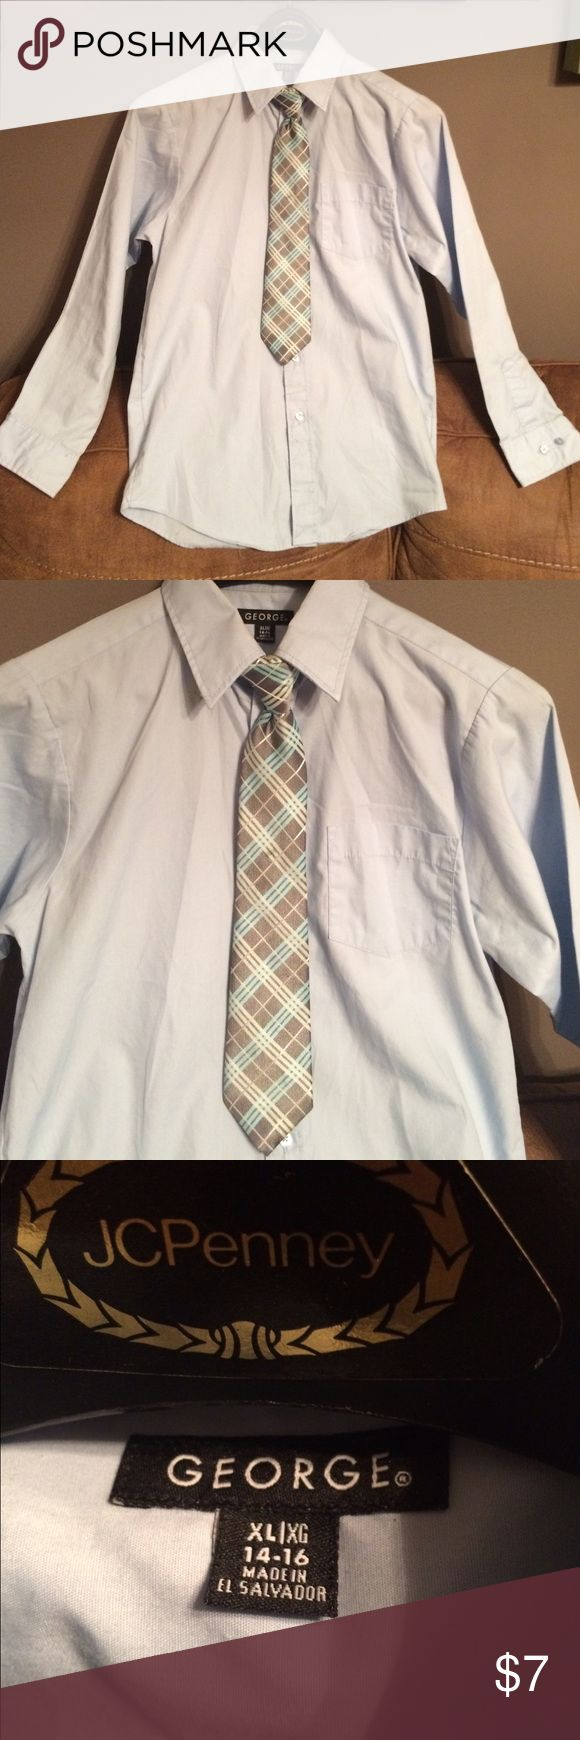 Boys George dress shirt This shirt is in great used condition! Pale blue in color. Has all buttons and an extra button. Tie not included but listed separately. George Shirts & Tops Button Down Shirts